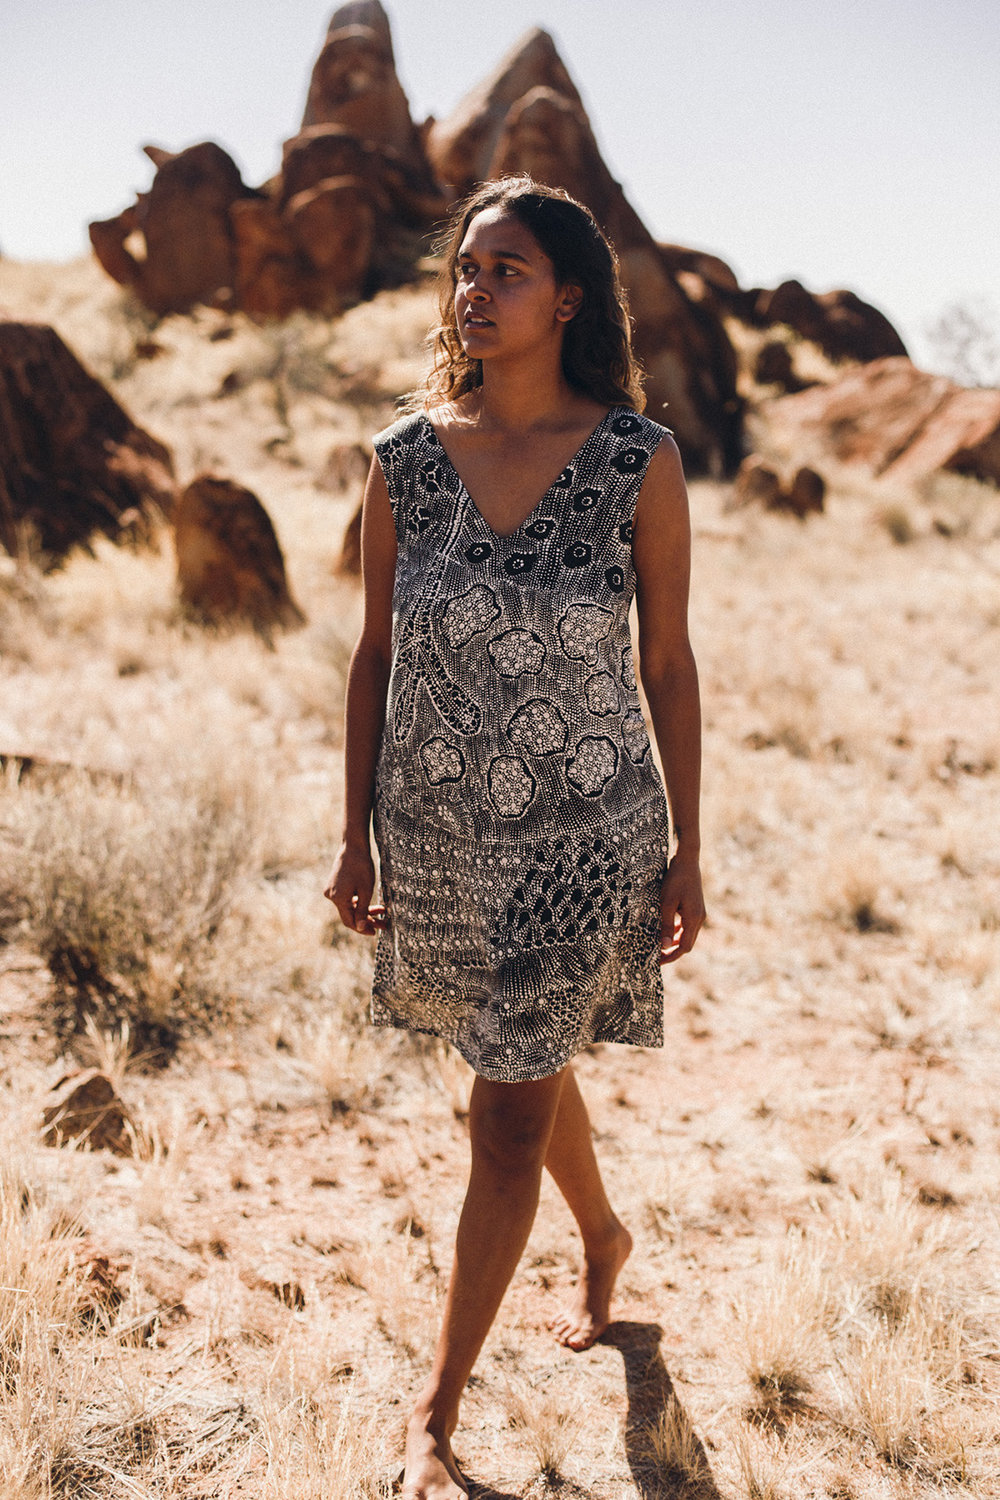 Through this collaboration with NORTH, the artists invite you to celebrate Warlpiri culture and their artwork, shared for the first time as fashion. -